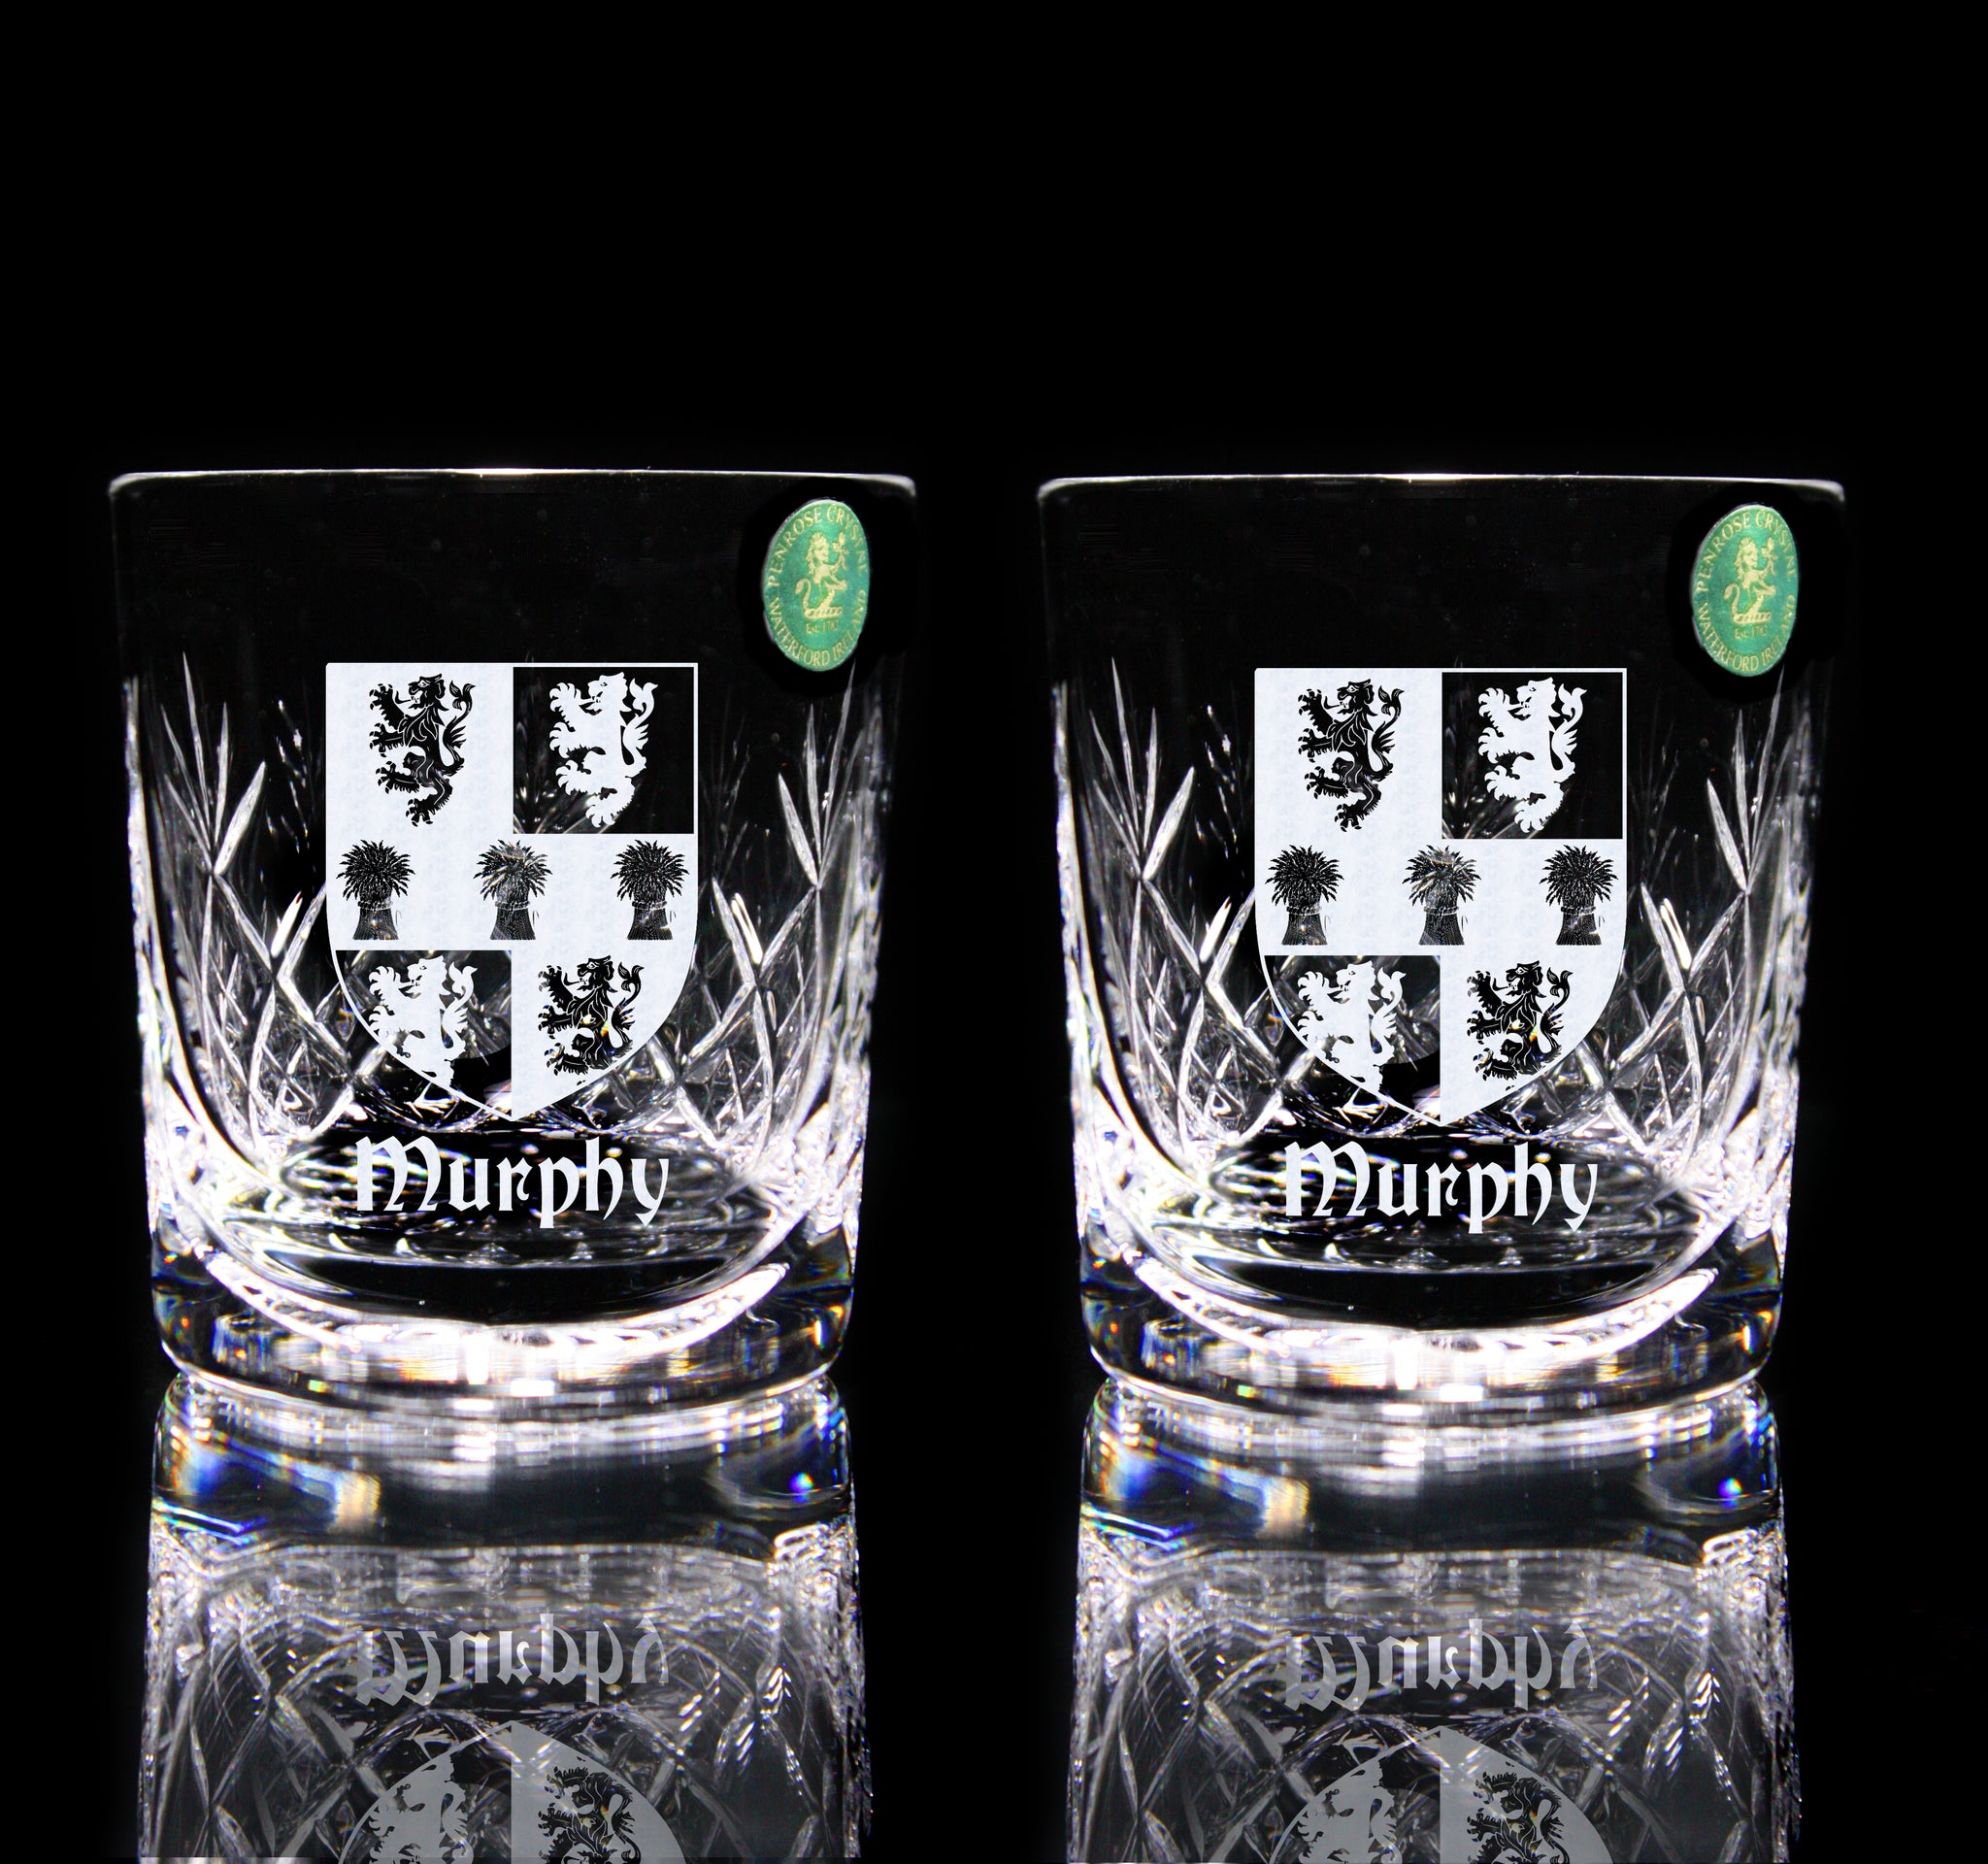 Pair of Crystal Whiskey Tumblers with Family Crest - Penrose Crystal Waterford